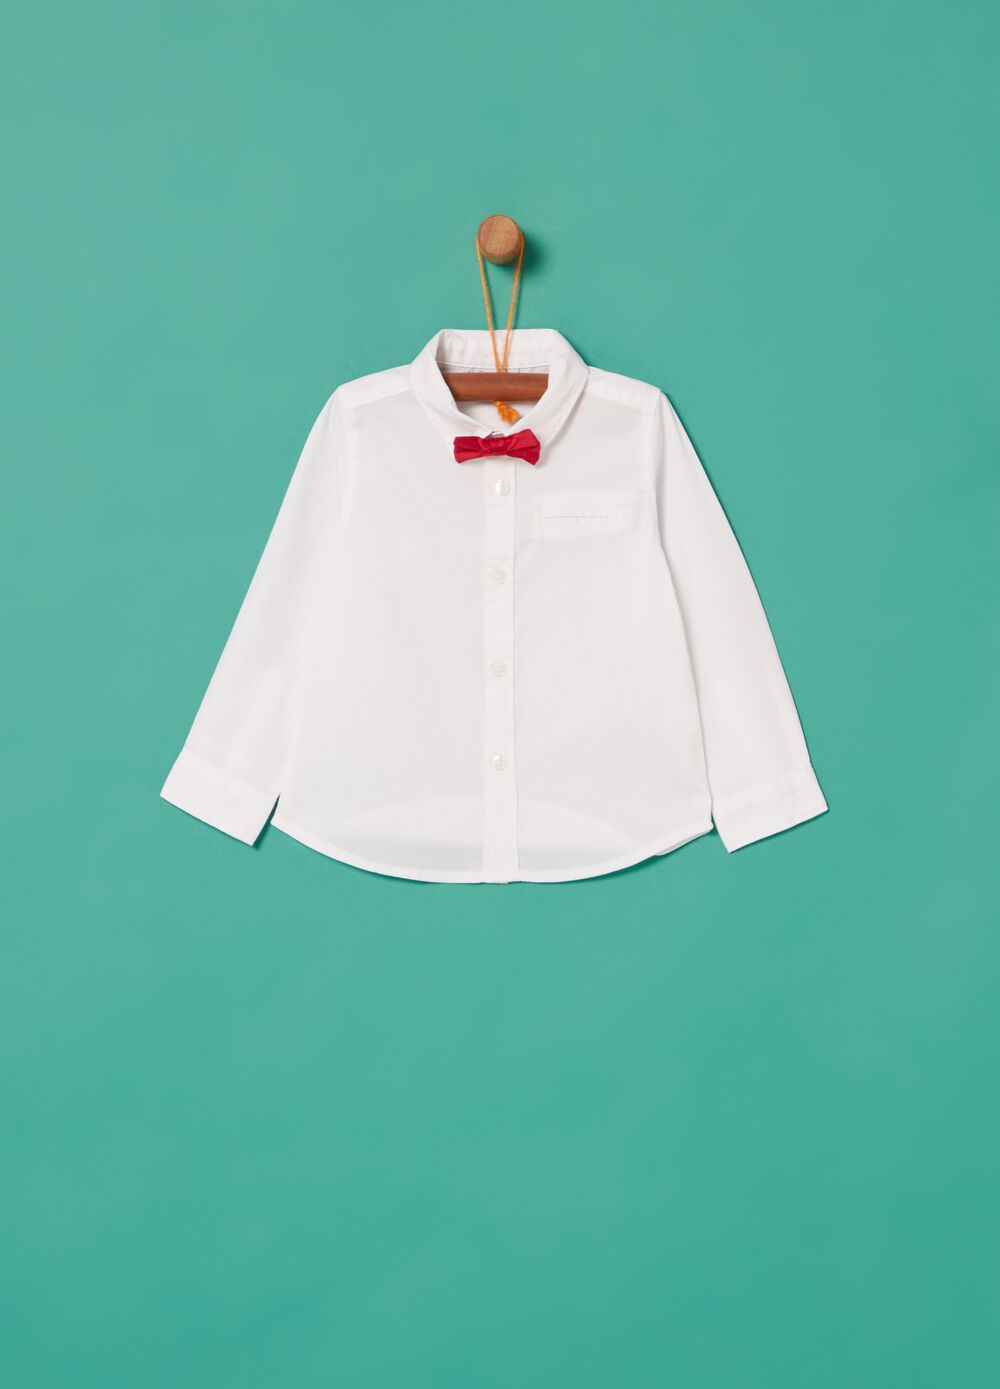 Shirt with bow tie and pocket